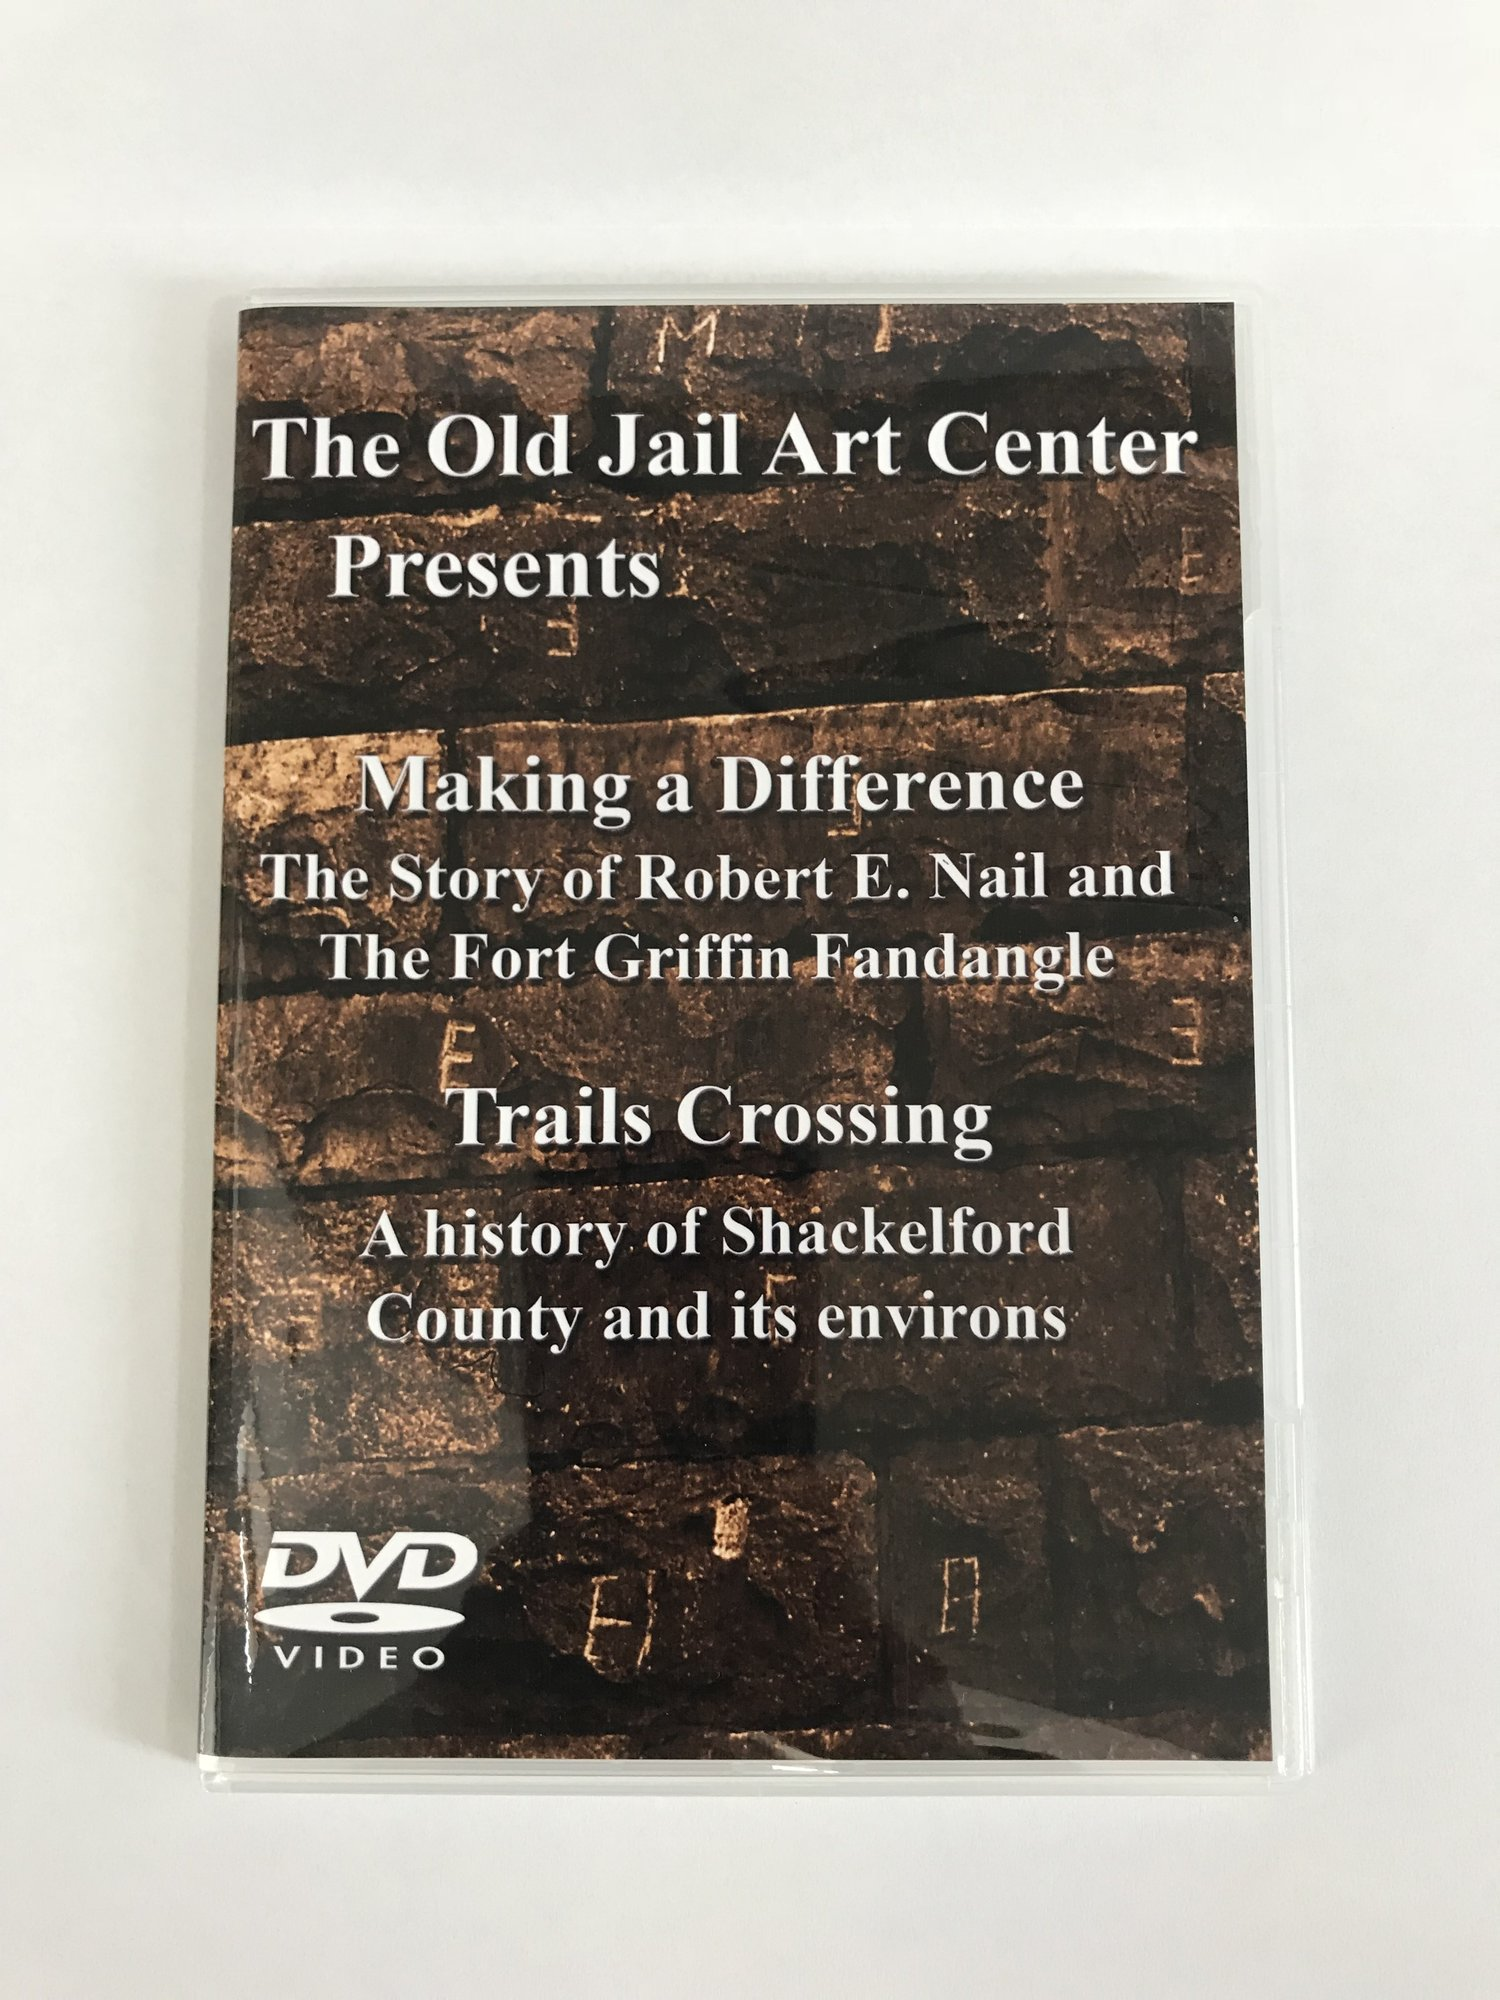 Albany and Shackelford County History Videos — The Old Jail Art Center